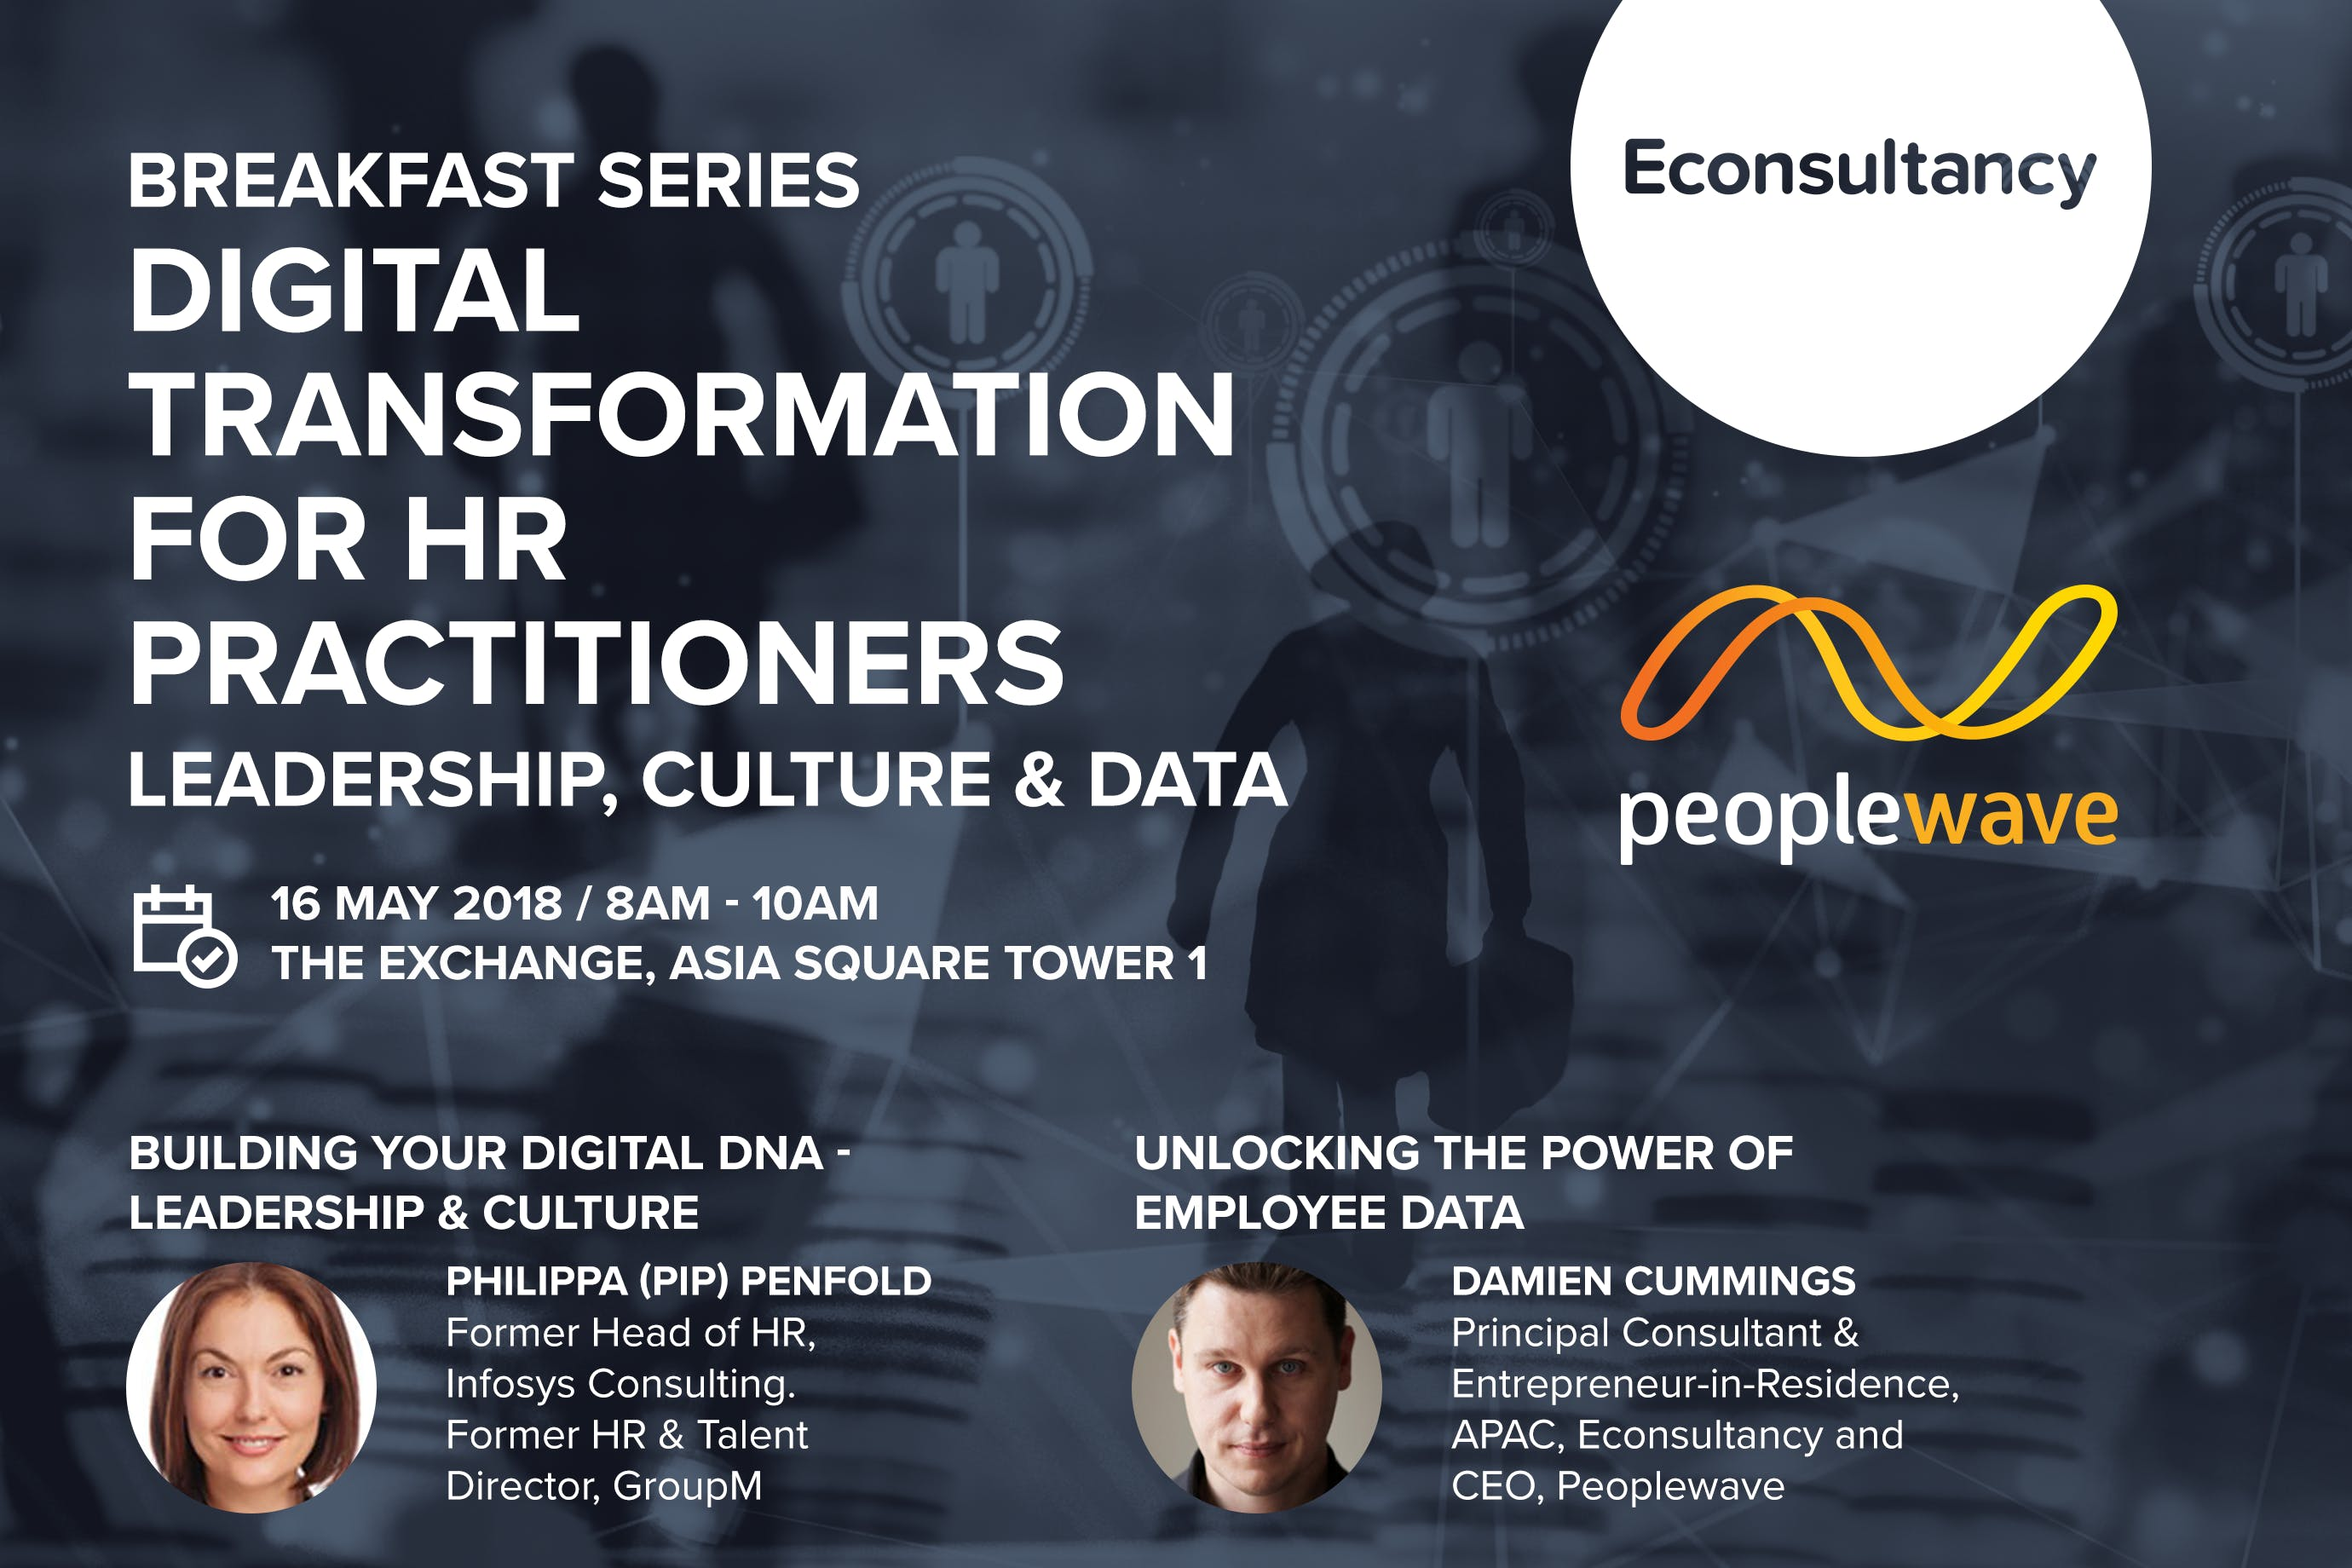 Digital Transformation for HR Practitioners - Leadership Culture & Data